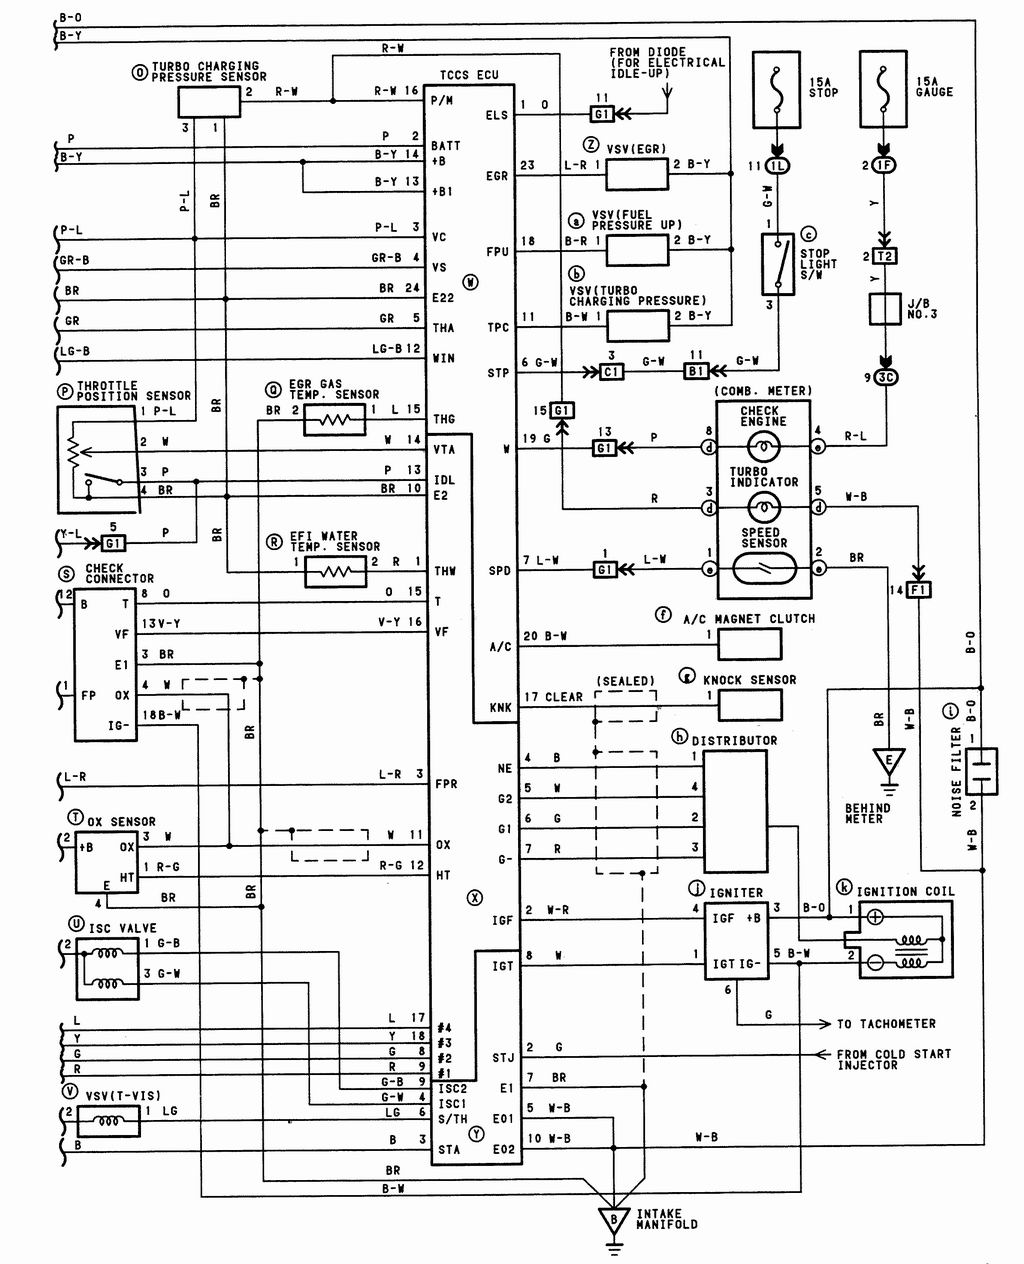 Tacoma Ecu Wiring Diagram